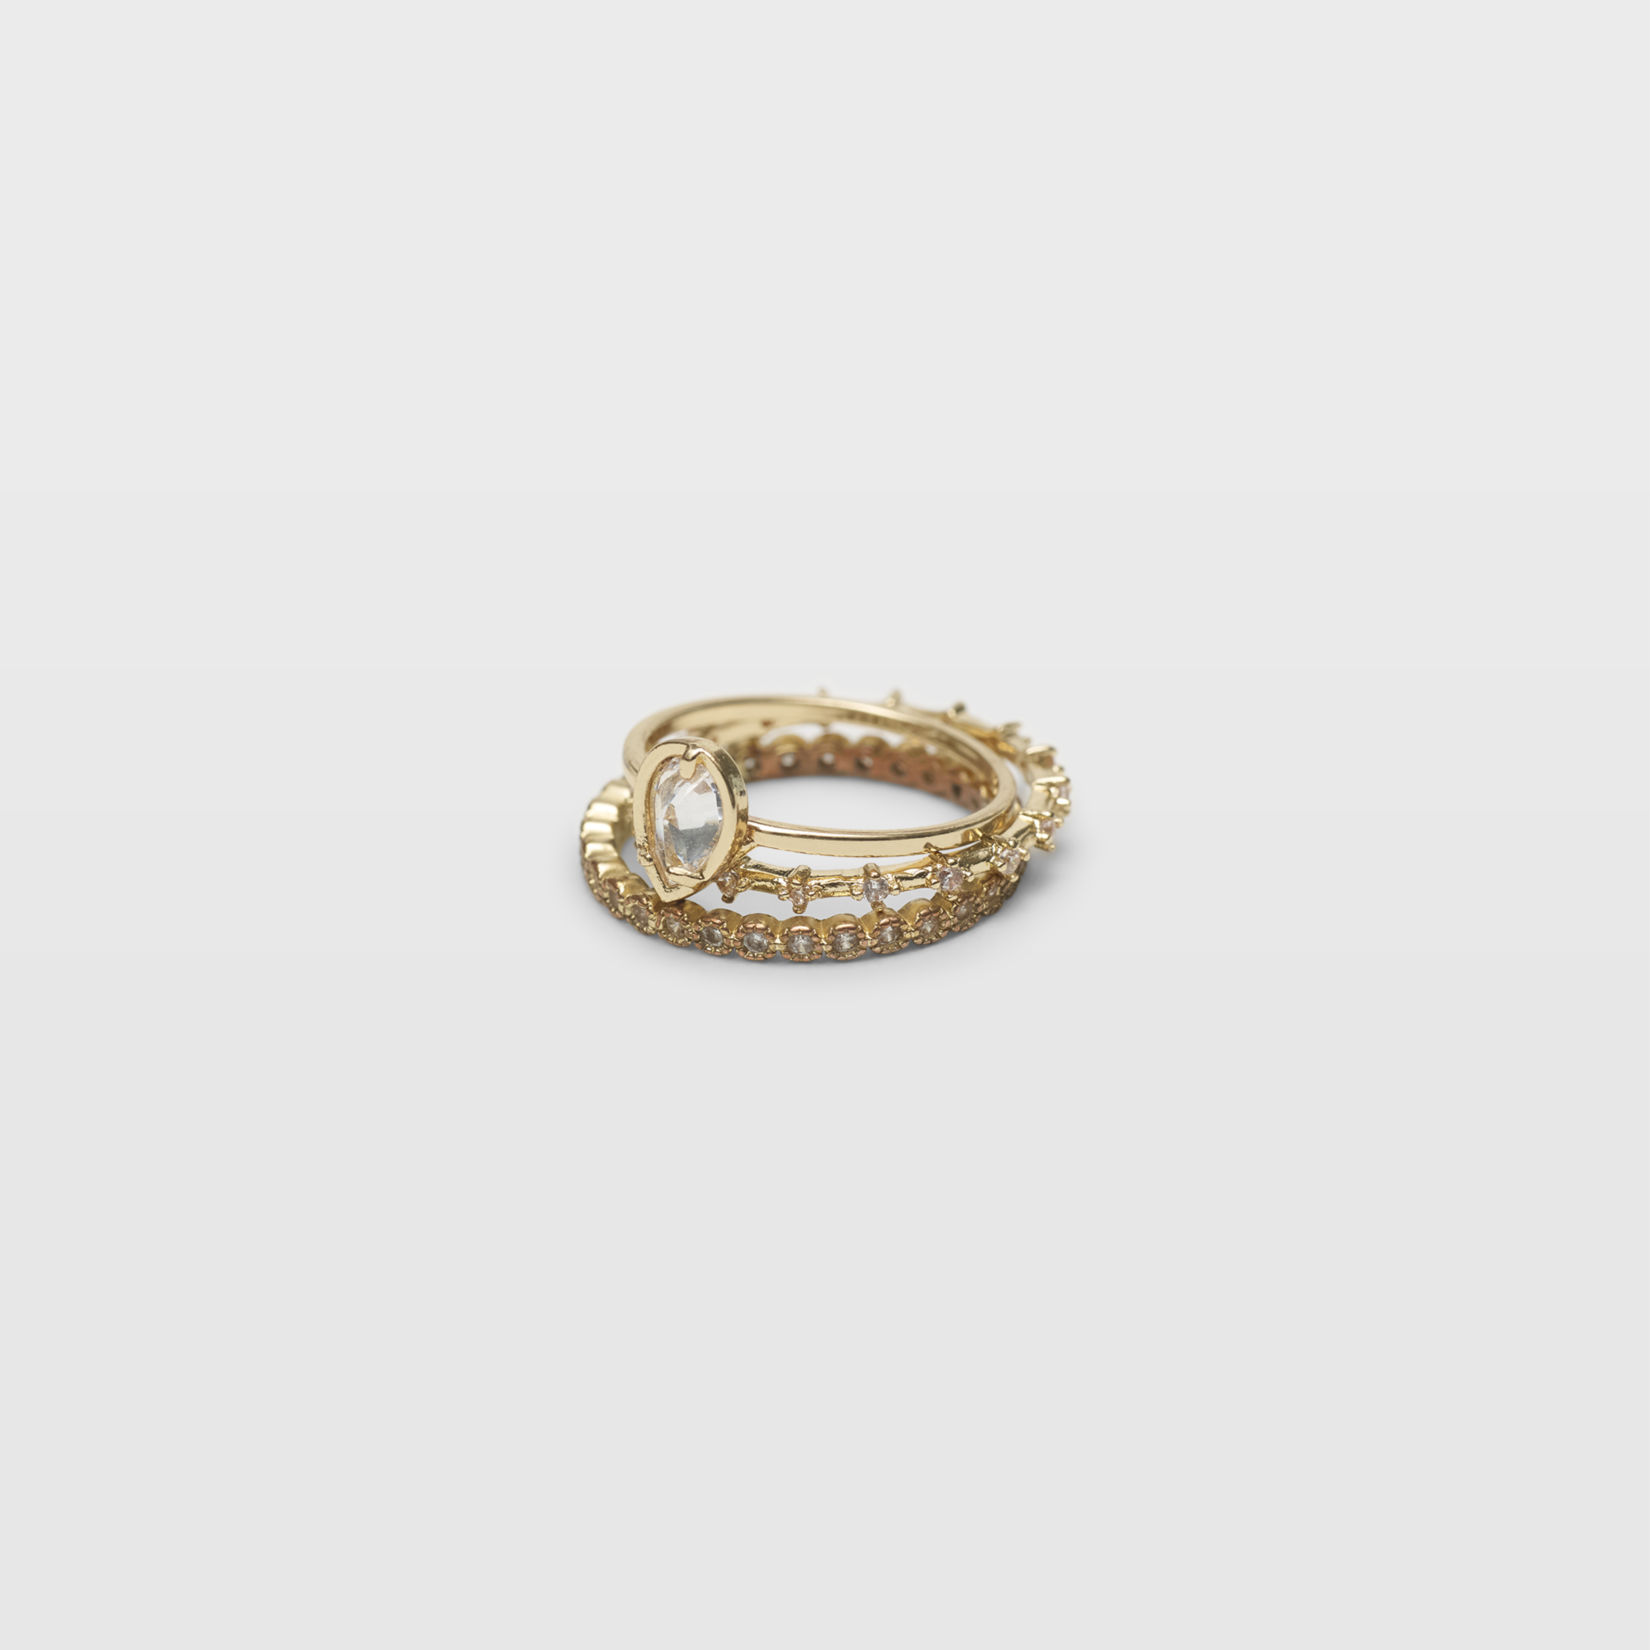 id wm w female accessories title s rings details f category club downloads